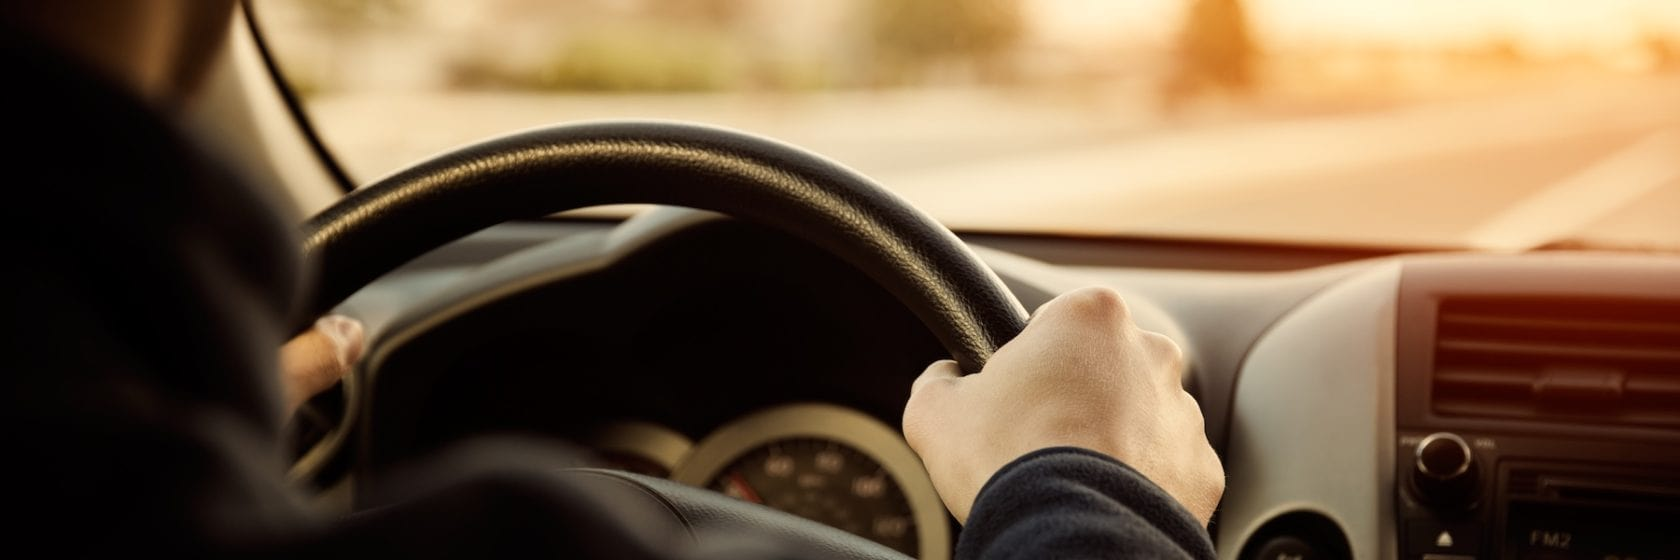 Beyond Safety: Zendrive Analytics Now Helping Personal Activity Tracking, In-Car Hardware and On-Demand Service Platforms